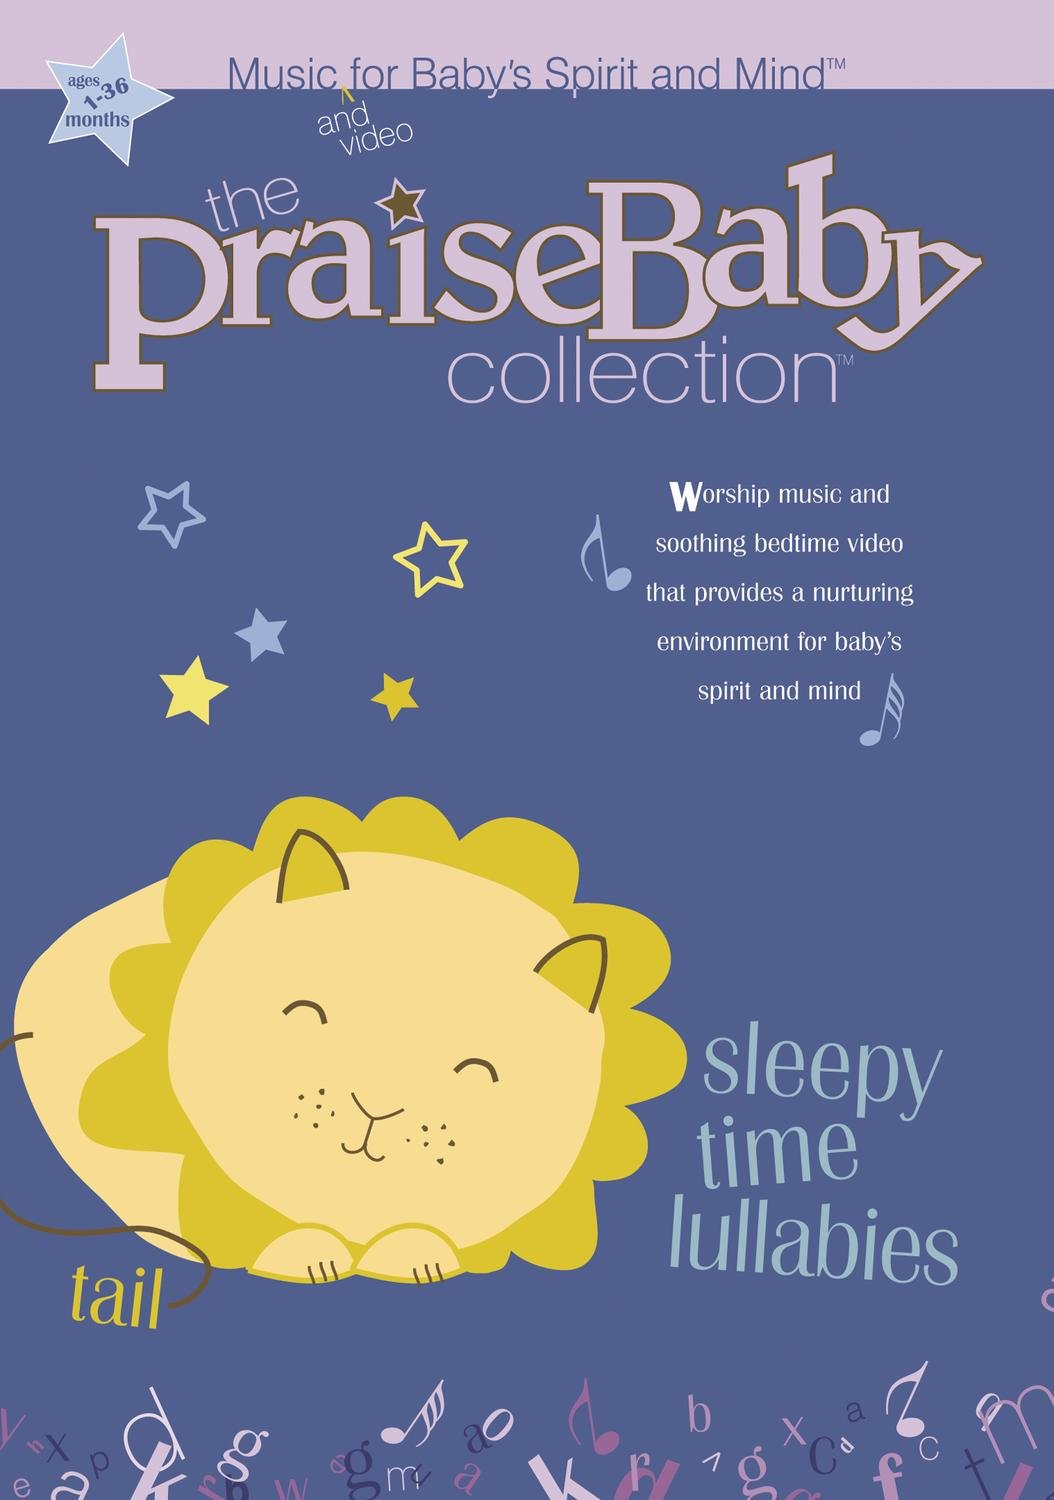 Sleepytime Lullabies Challenge the lowest Inventory cleanup selling sale price